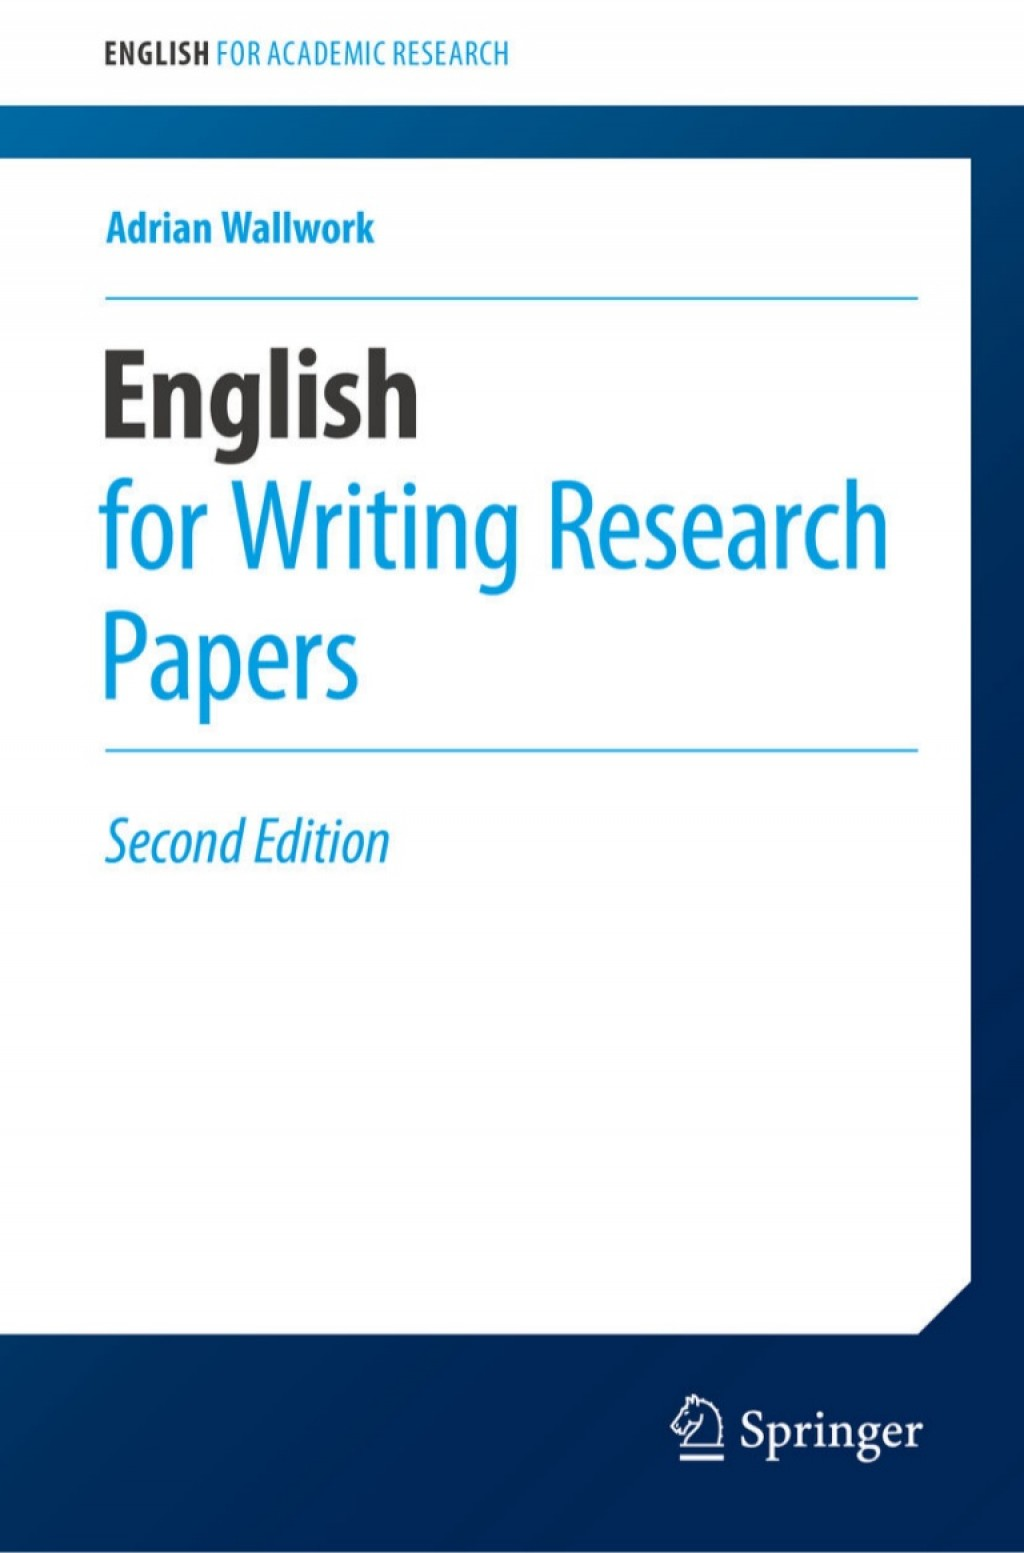 004 English For Writing Research Papers Adrian Wallwork Pdf Paper Englishforwritingresearchpapersbyadrianwallwork Thumbnail Marvelous 2011 Large